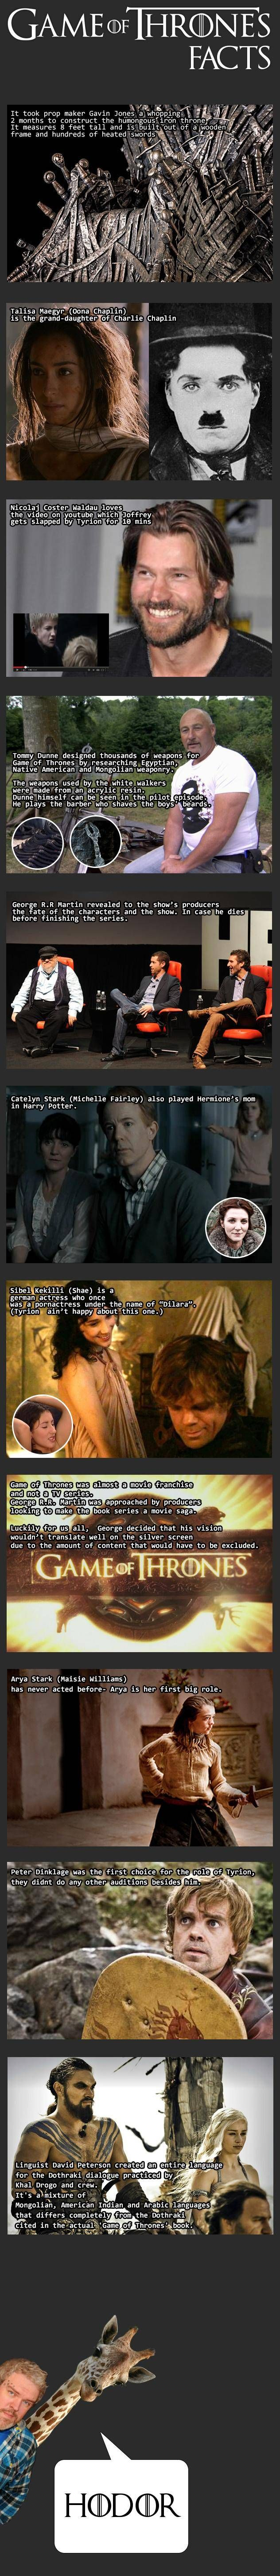 Game of Thrones Facts - the last one is by far the best.